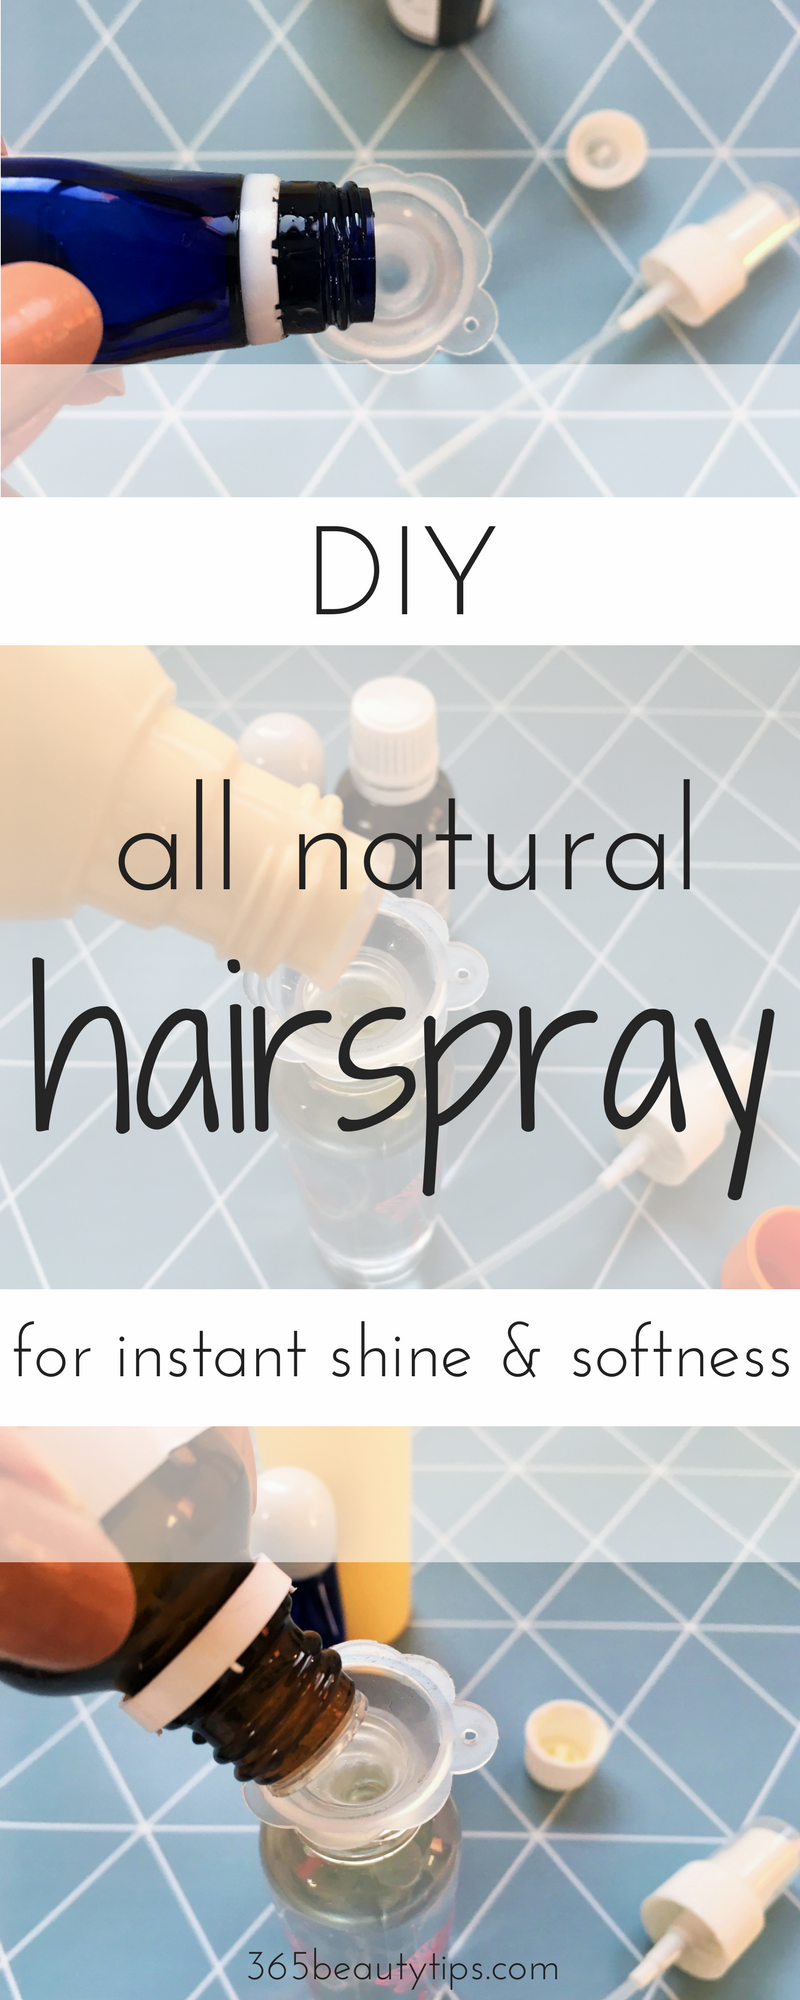 DIY-hairspray-for-shine-365-beauty-tips